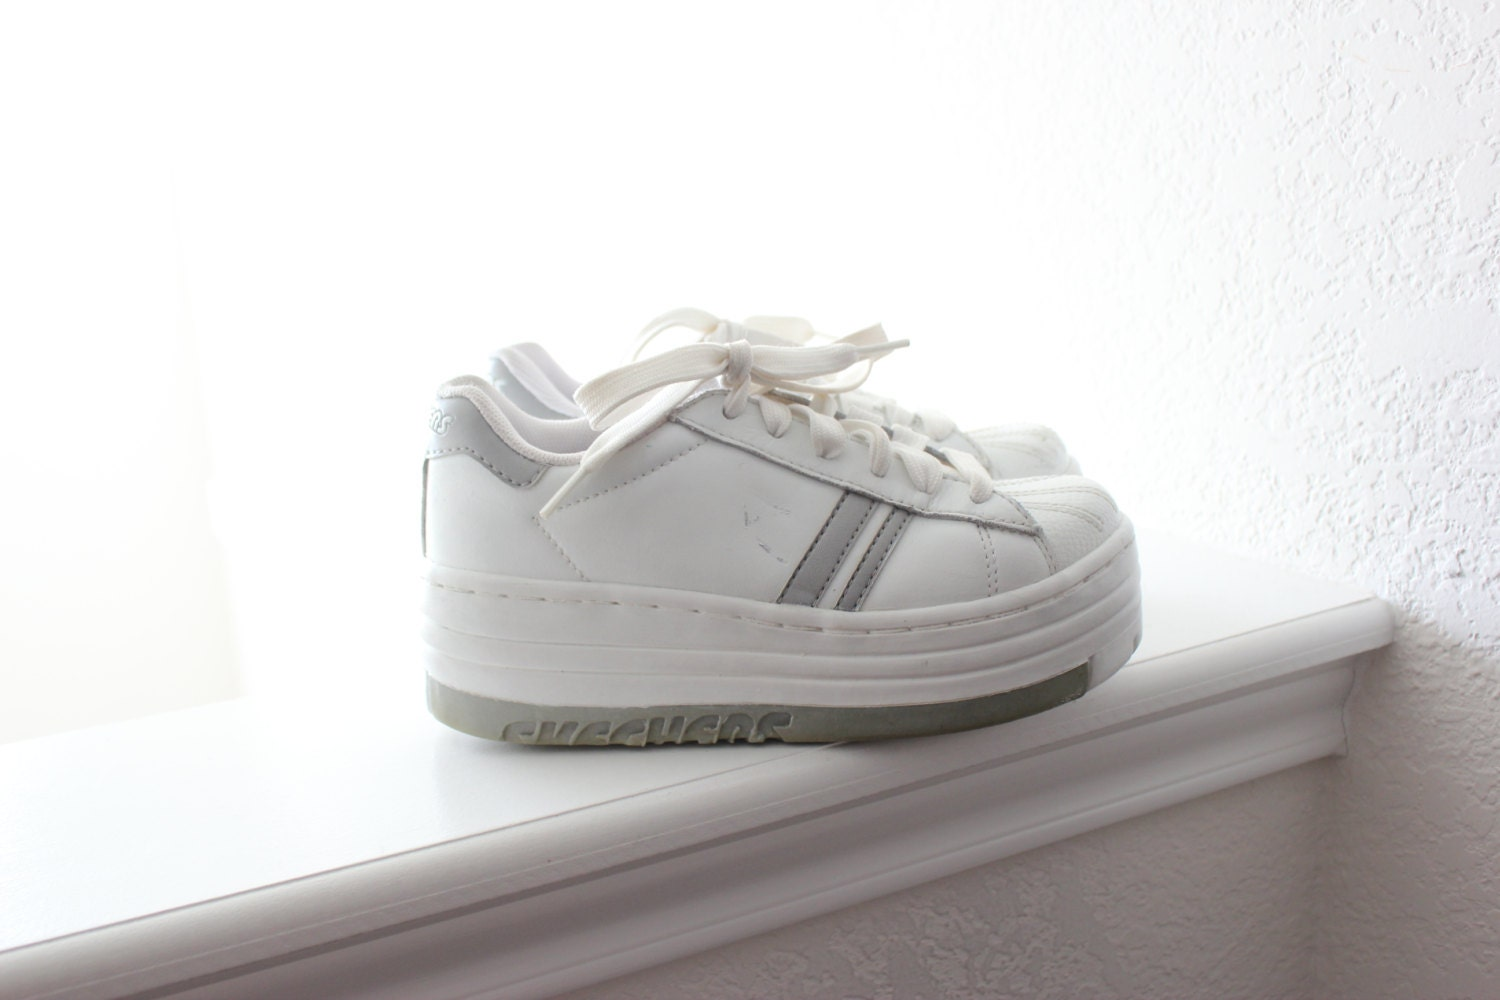 90's white platform skechers tennis shoes 6.5